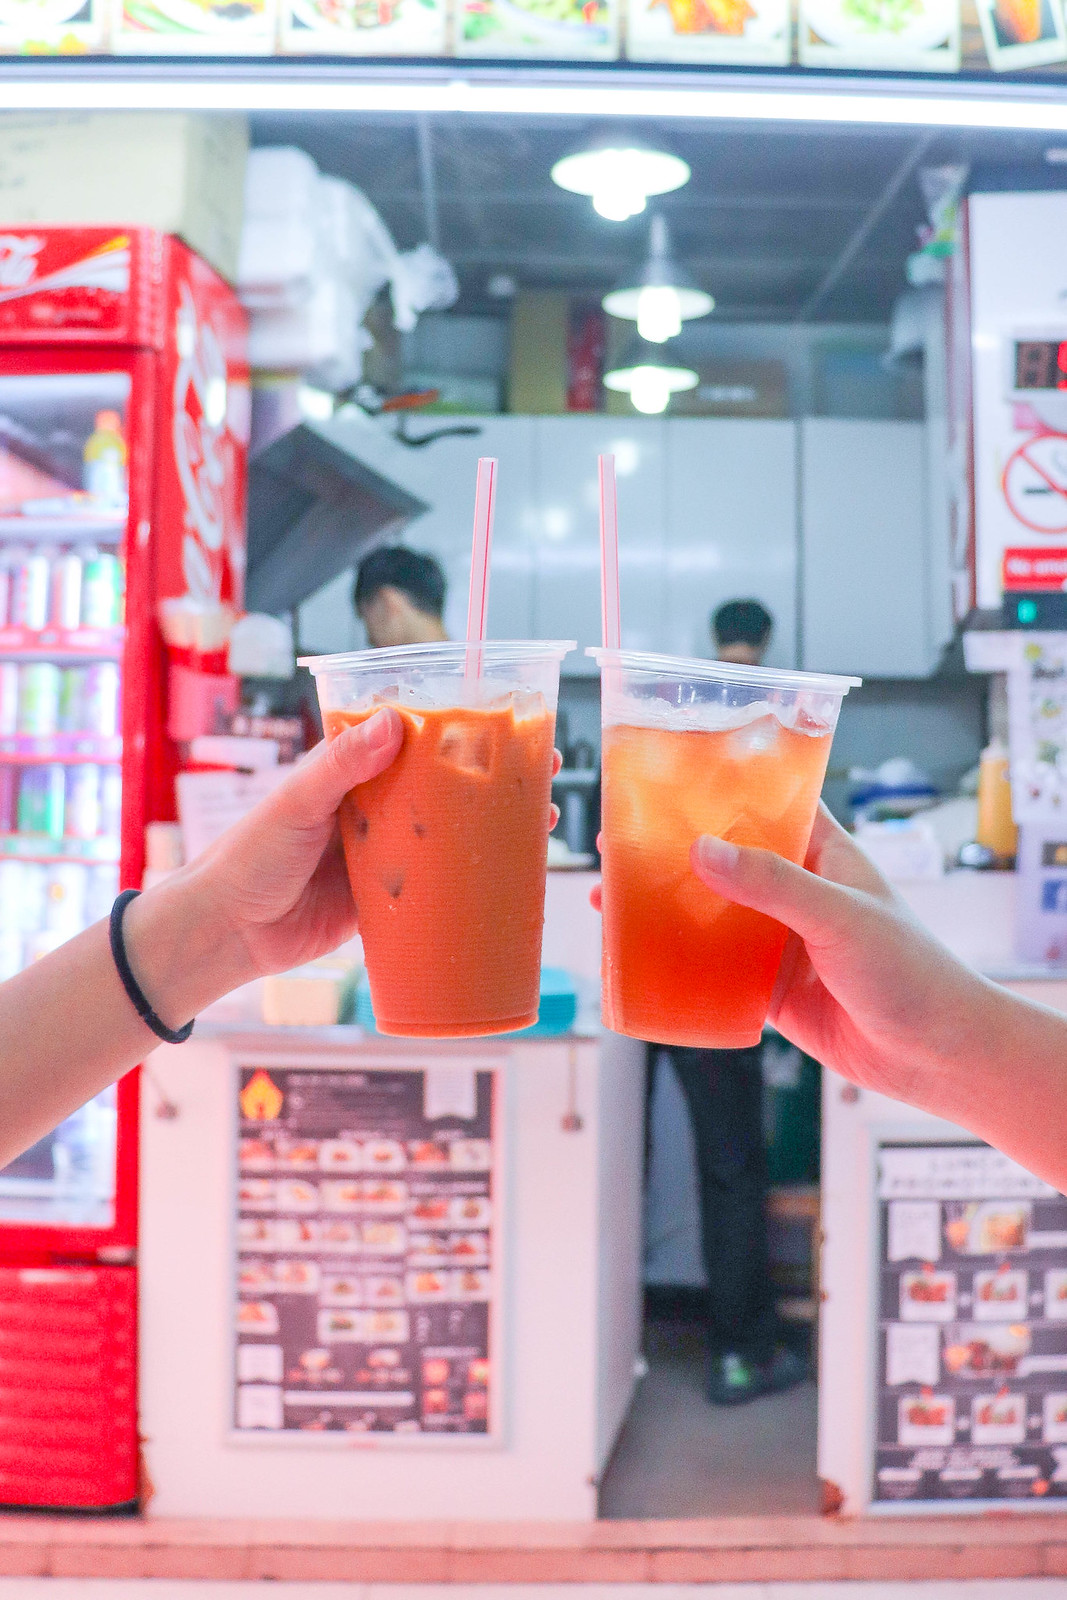 Bugis Street Food: Maenoi Milk Tea